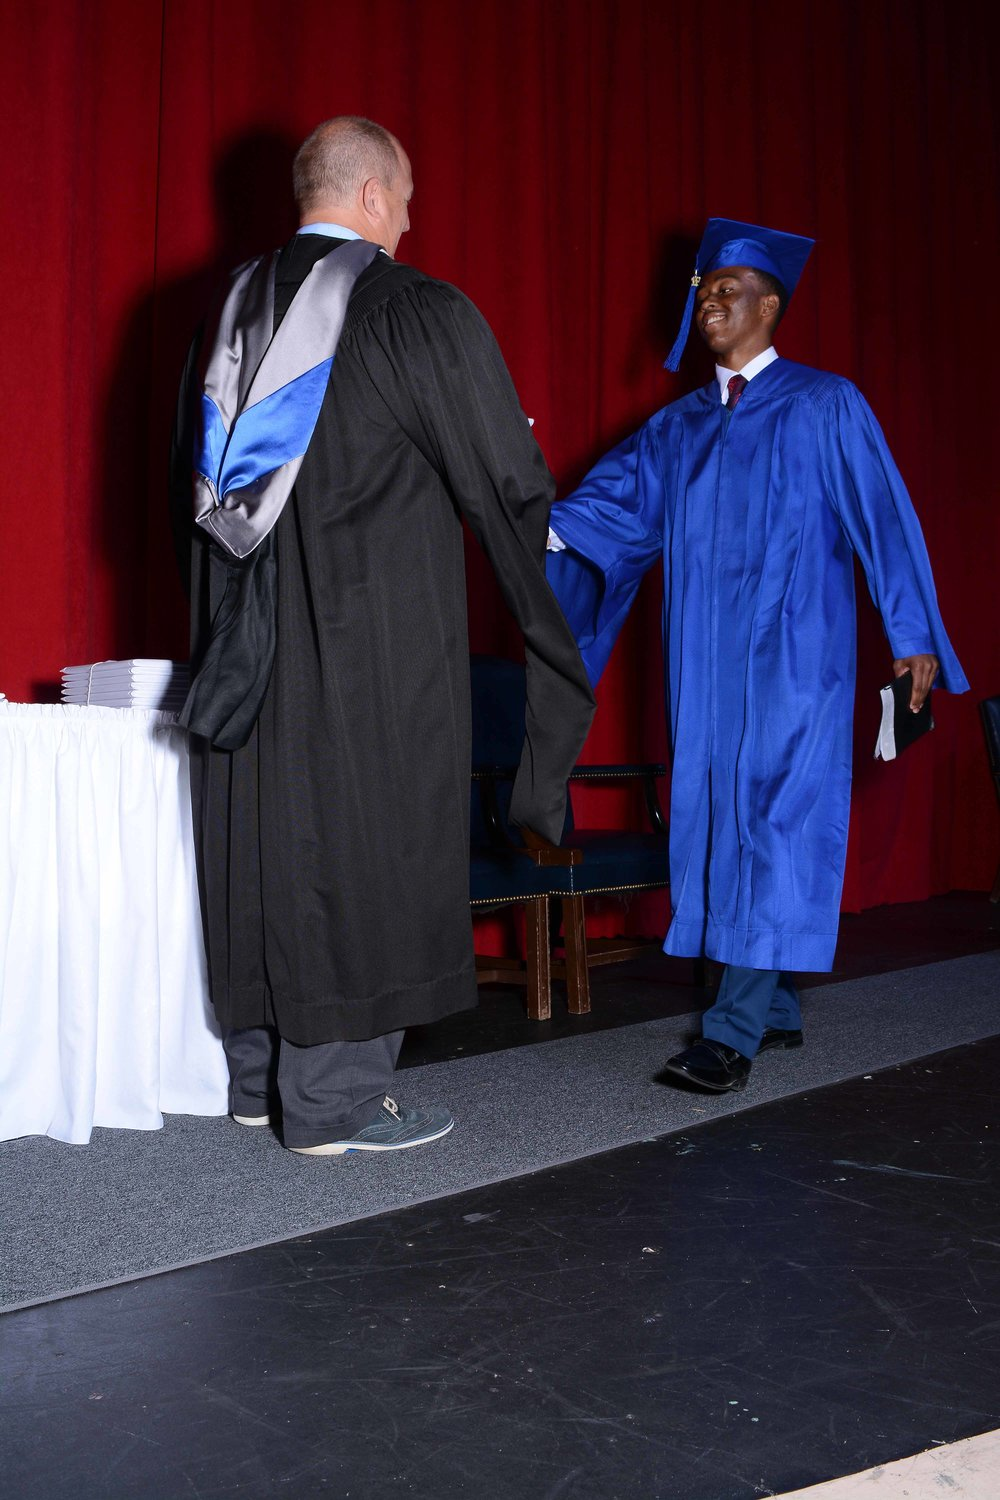 May14 Commencement162.jpg